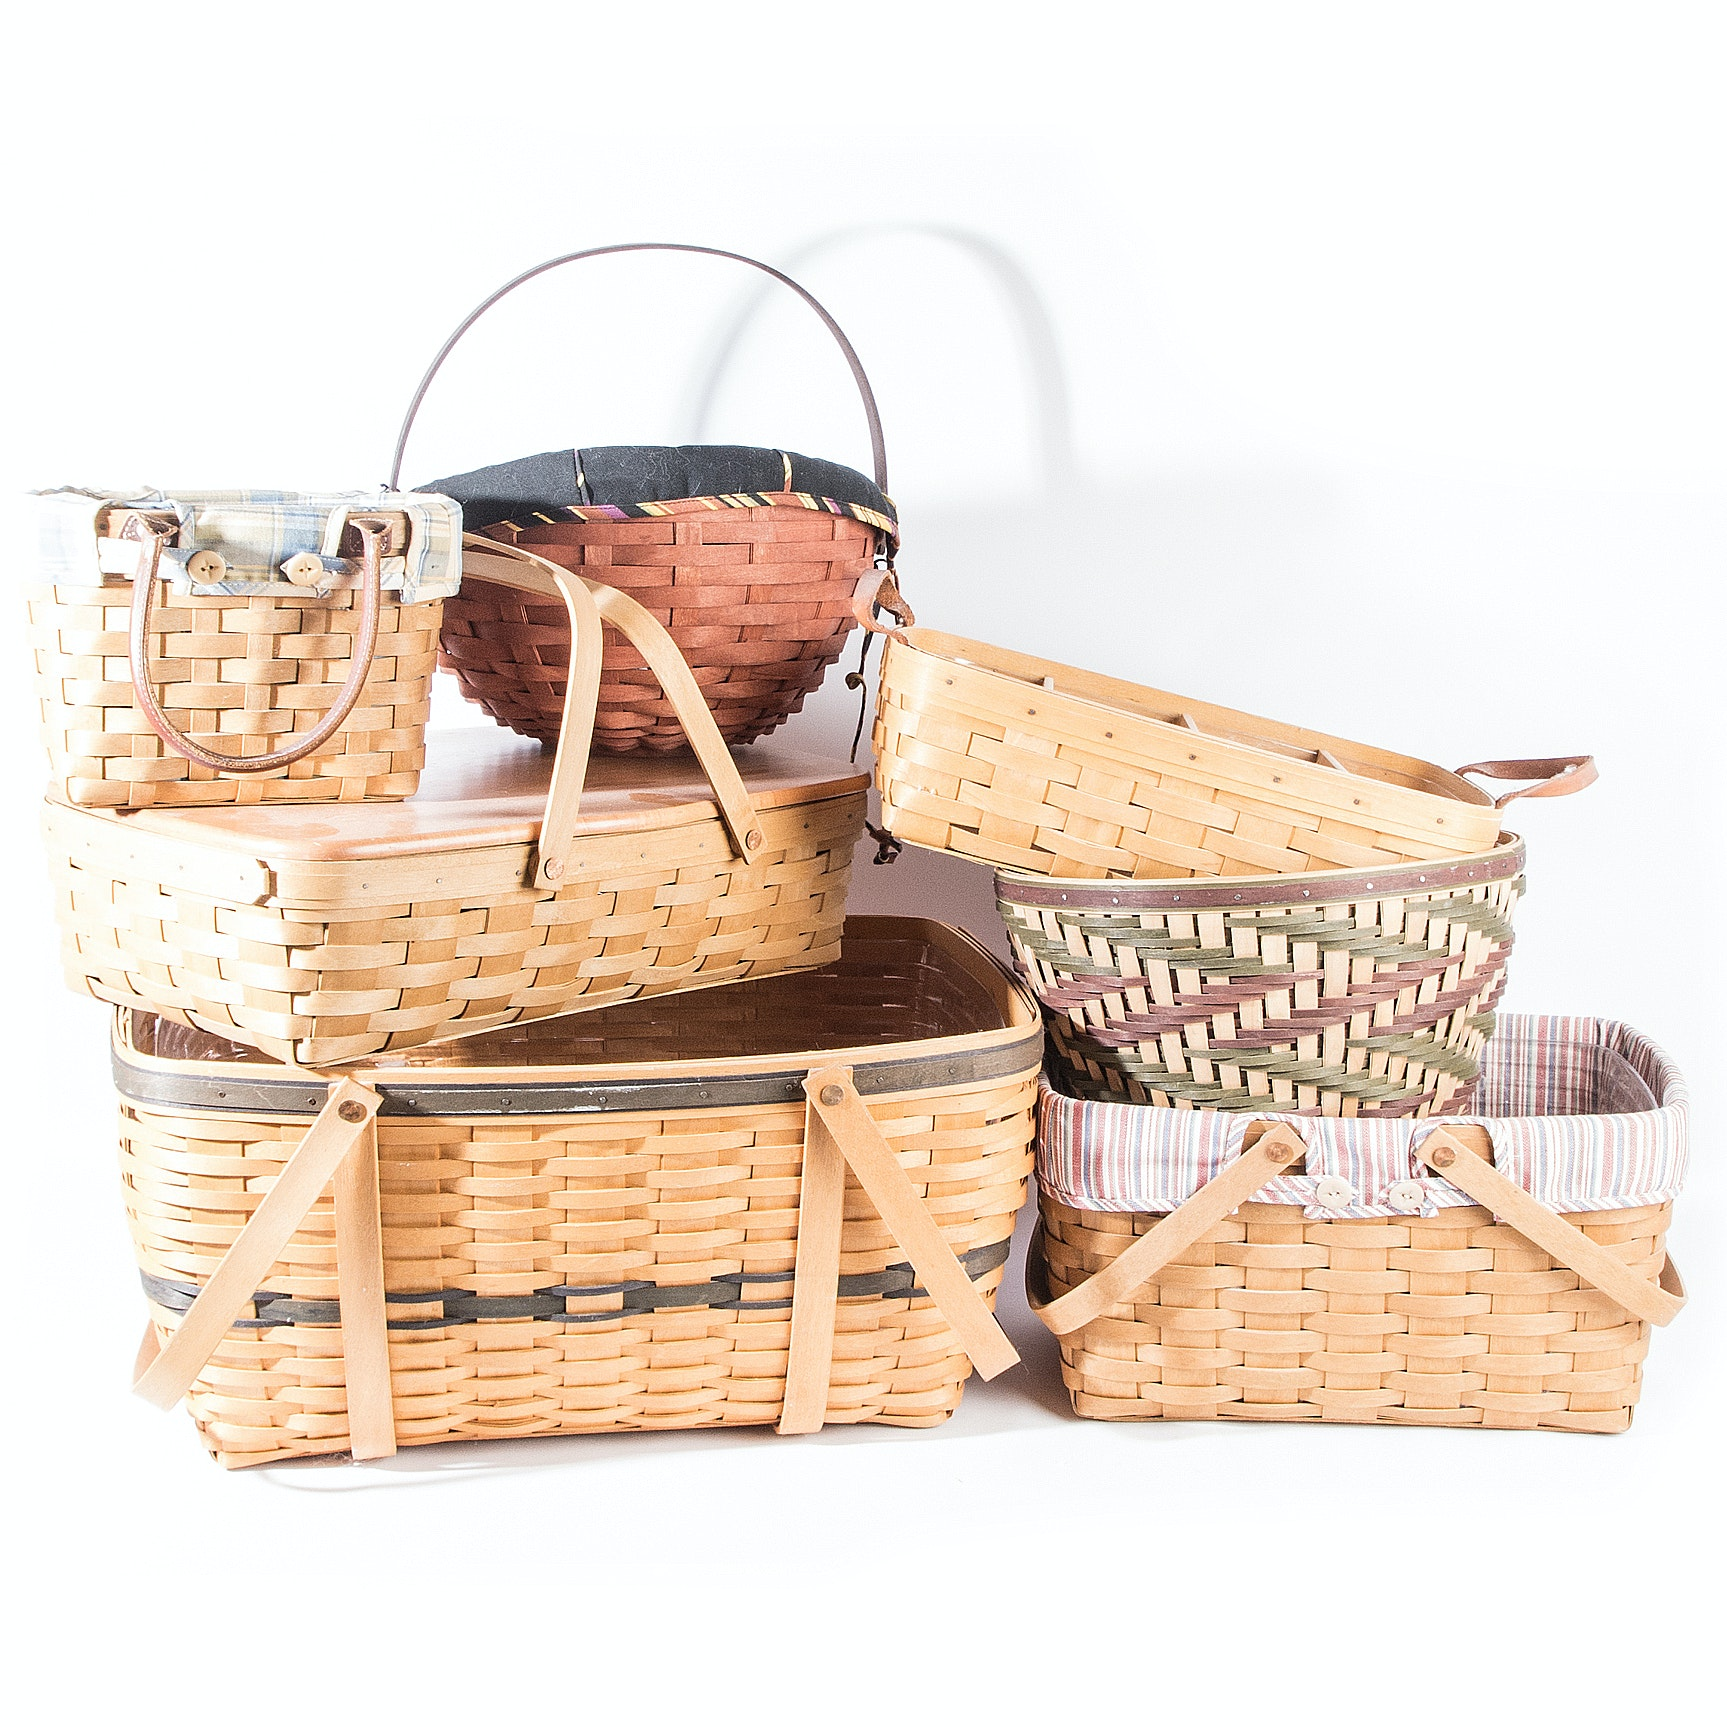 Longaberger baskets for sale longaberger baskets Longaberger baskets for sale